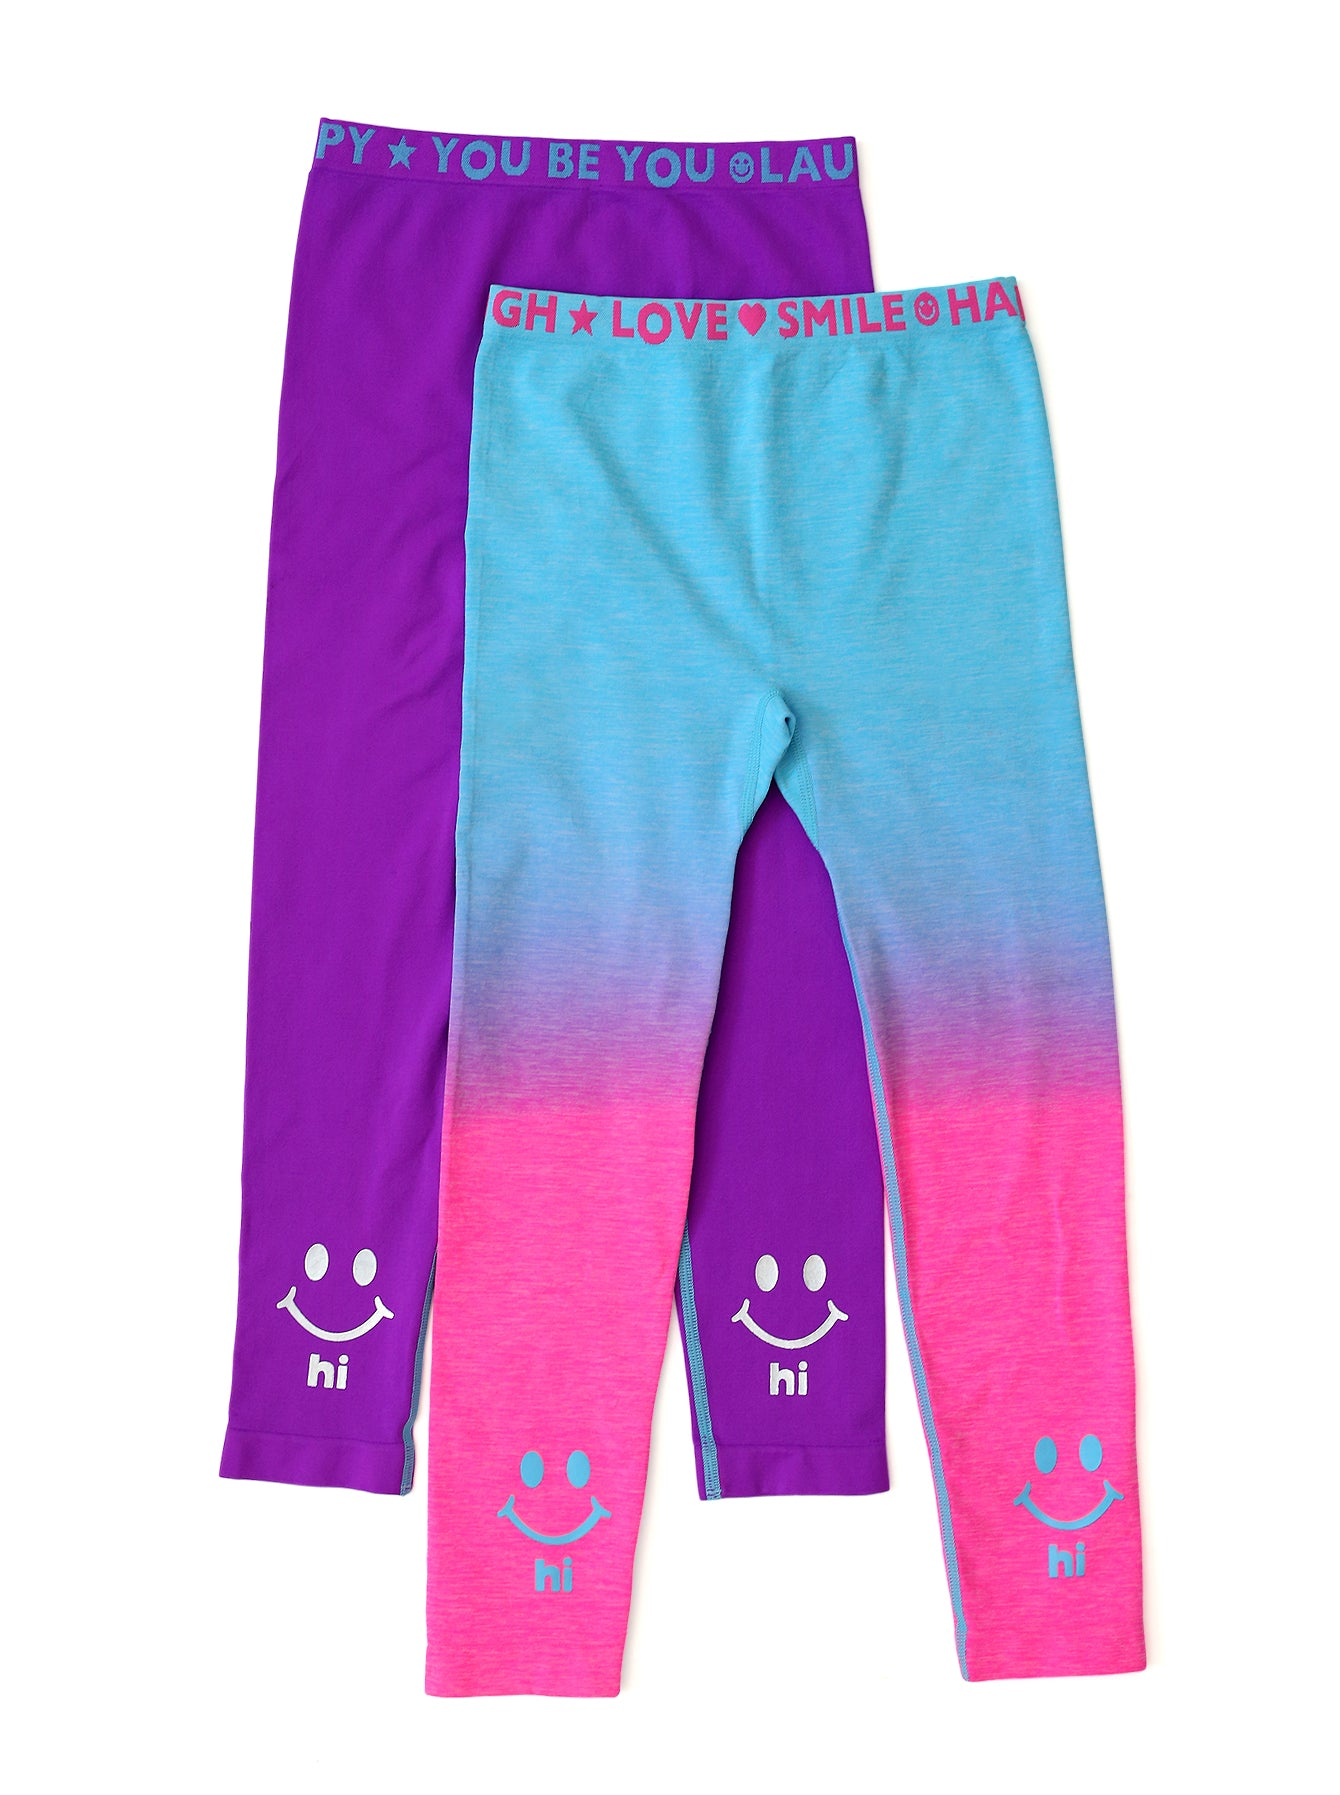 PURPLE & BLUE OMBRE HI BYE LEGGINGS 2-PACK ($7.00 each!)